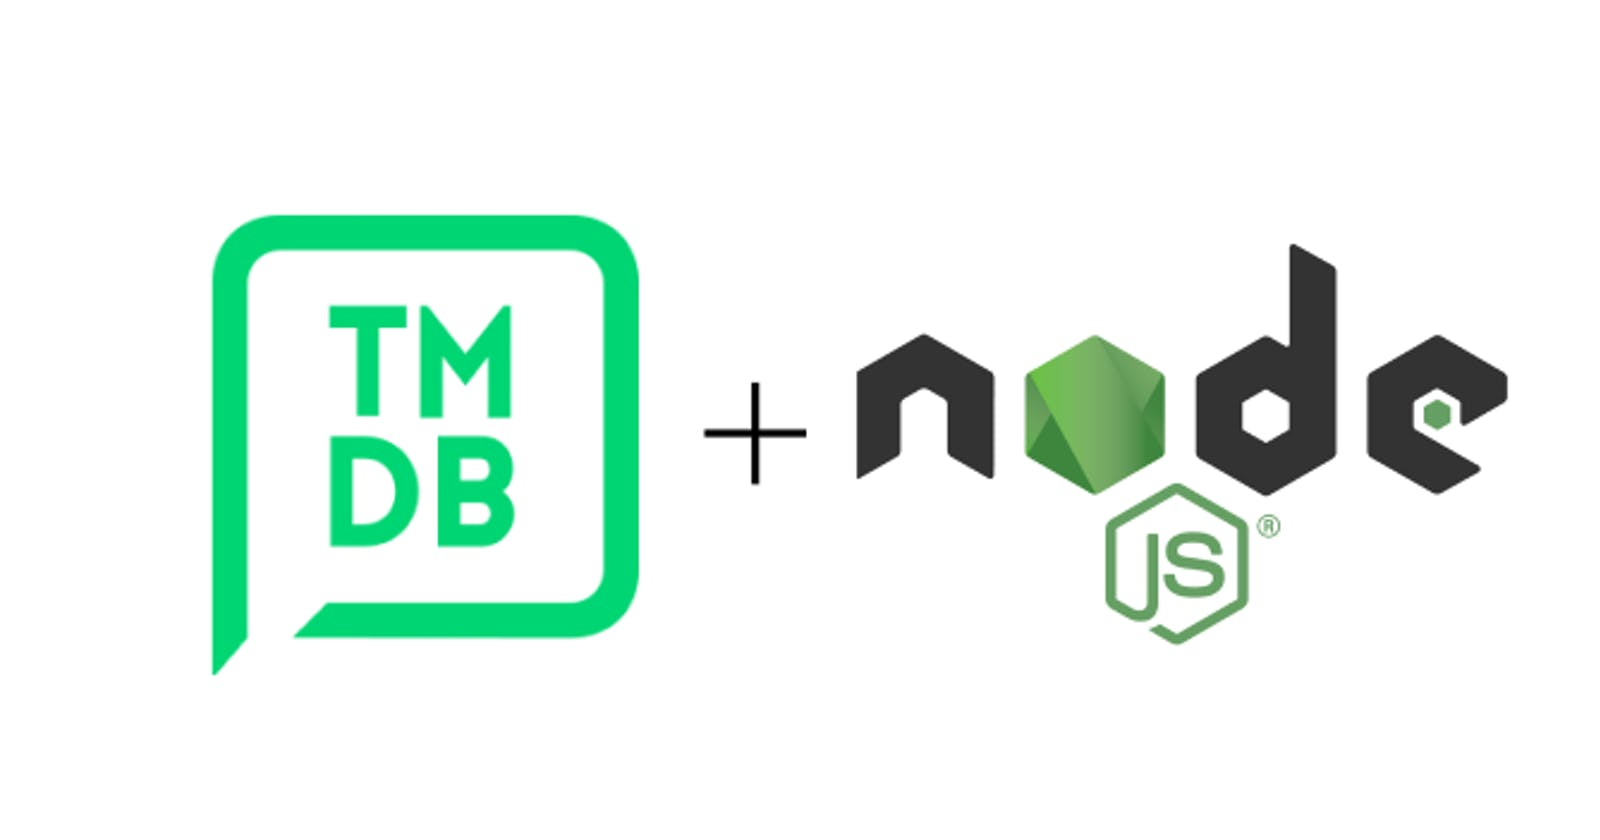 Exploring The Movie DB in Node.js